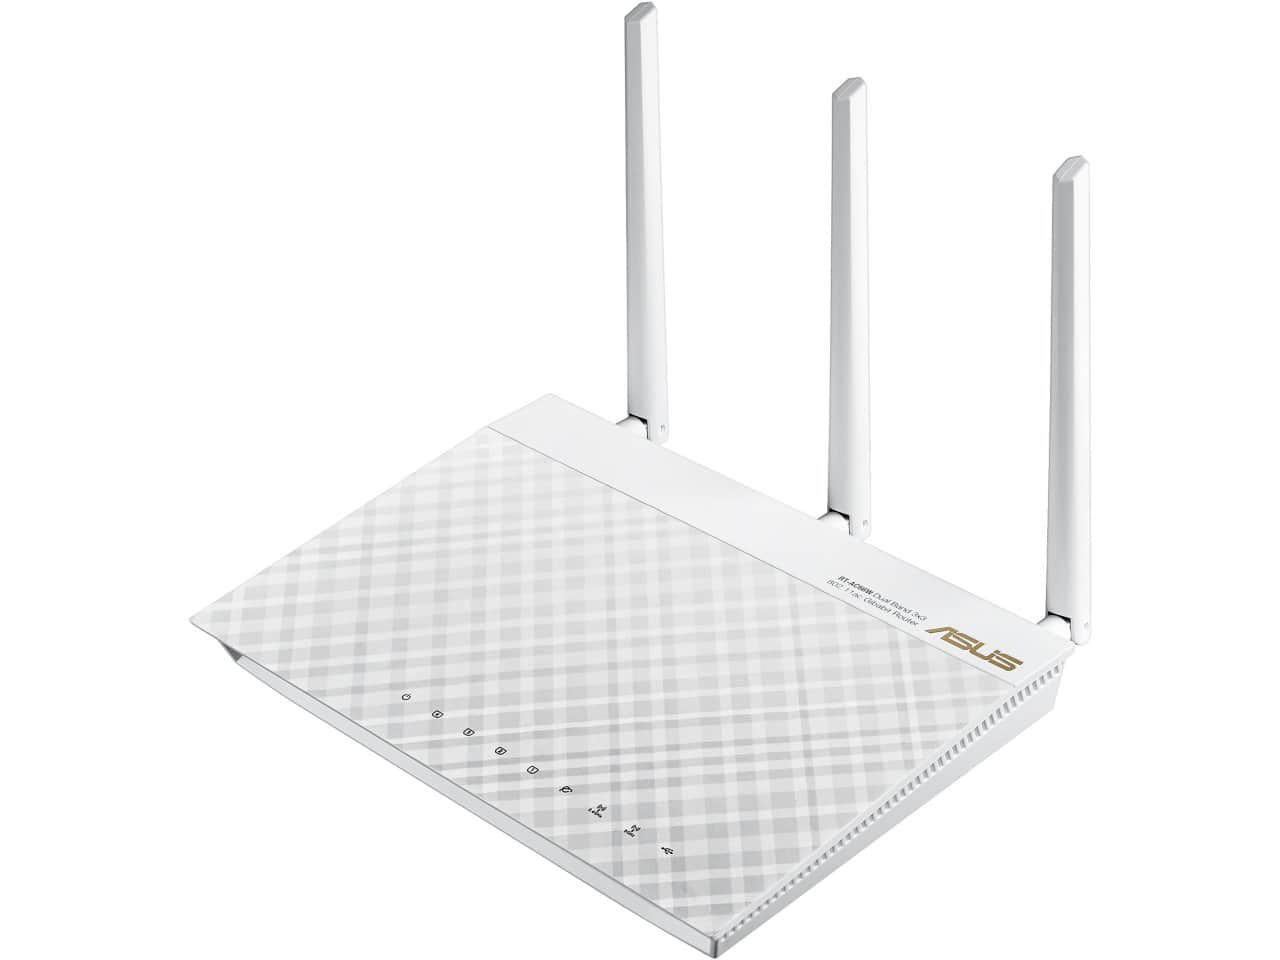 Asus RT-AC66W AC1750 White Dual-Band Wireless Gigabit Router for $79.99 AR, 8-Port TP-LINK TL-SG108 Unmanaged Gigabit Metal Desktop Switch for $17.99 AR & More @ Newegg.com